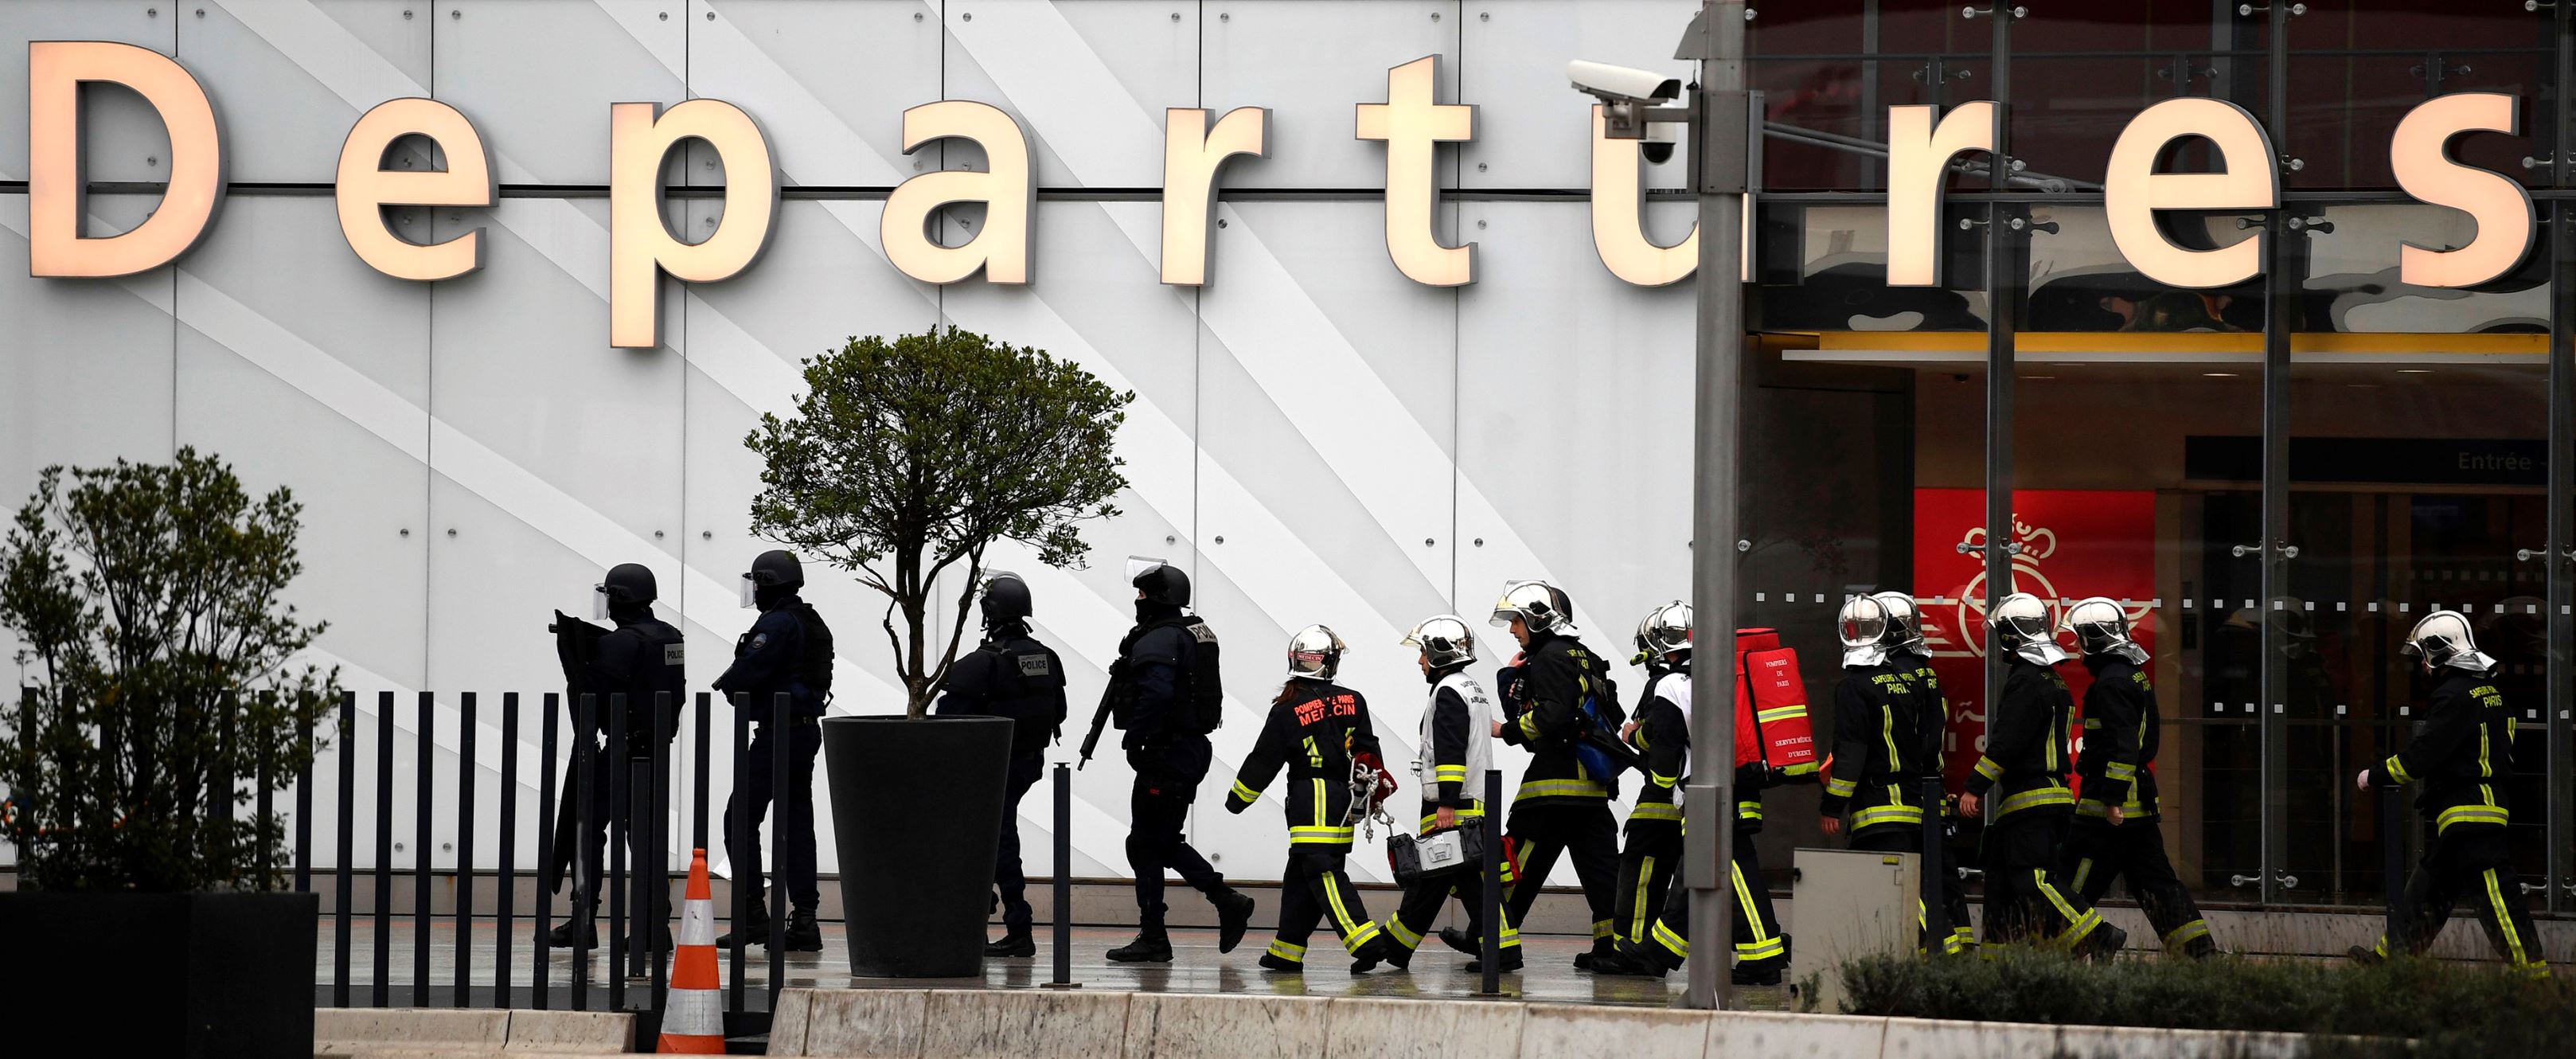 Slide 2 of 14: French firefighters and RAID police unit officers secure Paris' Orly airport on March 18, 2017 following the shooting of a man by French security forces. Security forces at Paris' Orly airport shot dead a man who took a weapon from a soldier, the interior ministry said. Witnesses said the airport was evacuated following the shooting at around 8:30am (0730GMT). The man fled into a shop at the airport before he was shot dead, an interior ministry spokesman told AFP. He said there were no people were wounded in the incident.